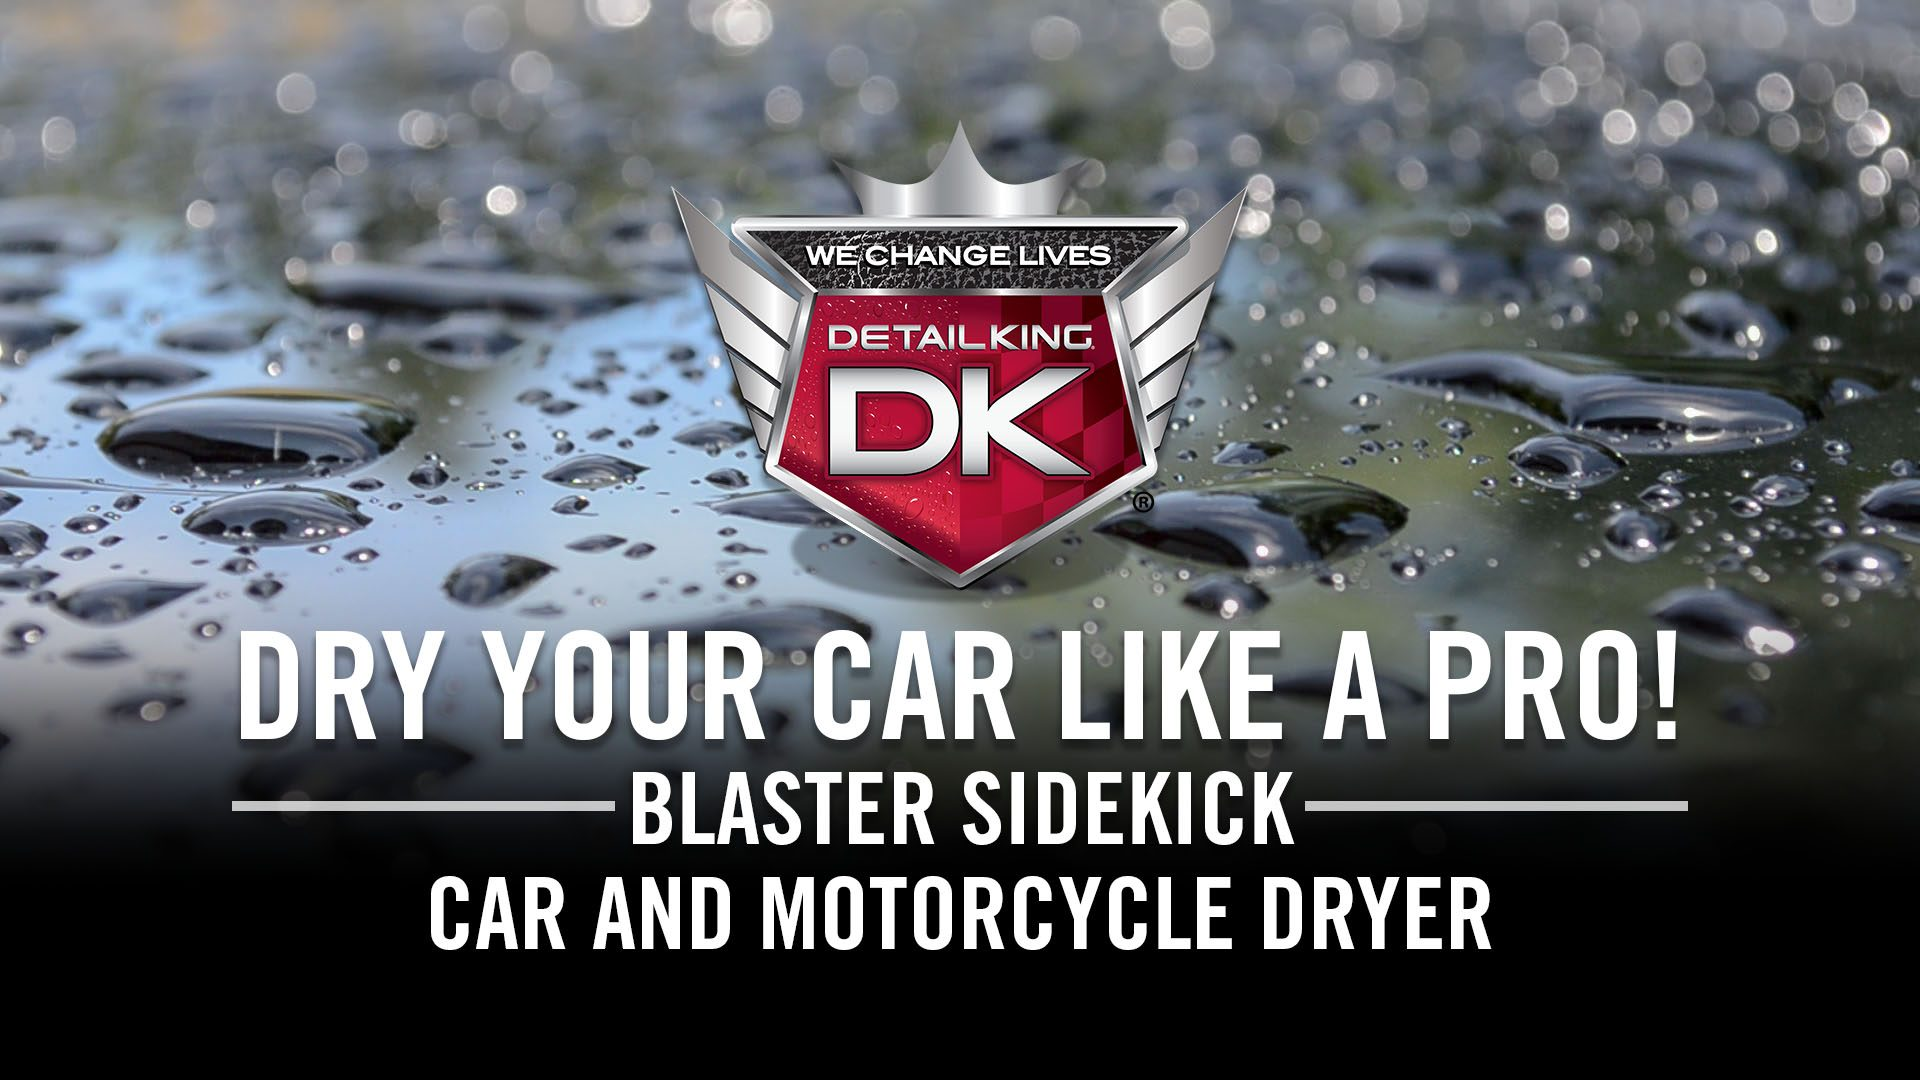 Blaster Sidekick Car & Motorcycle Dryer